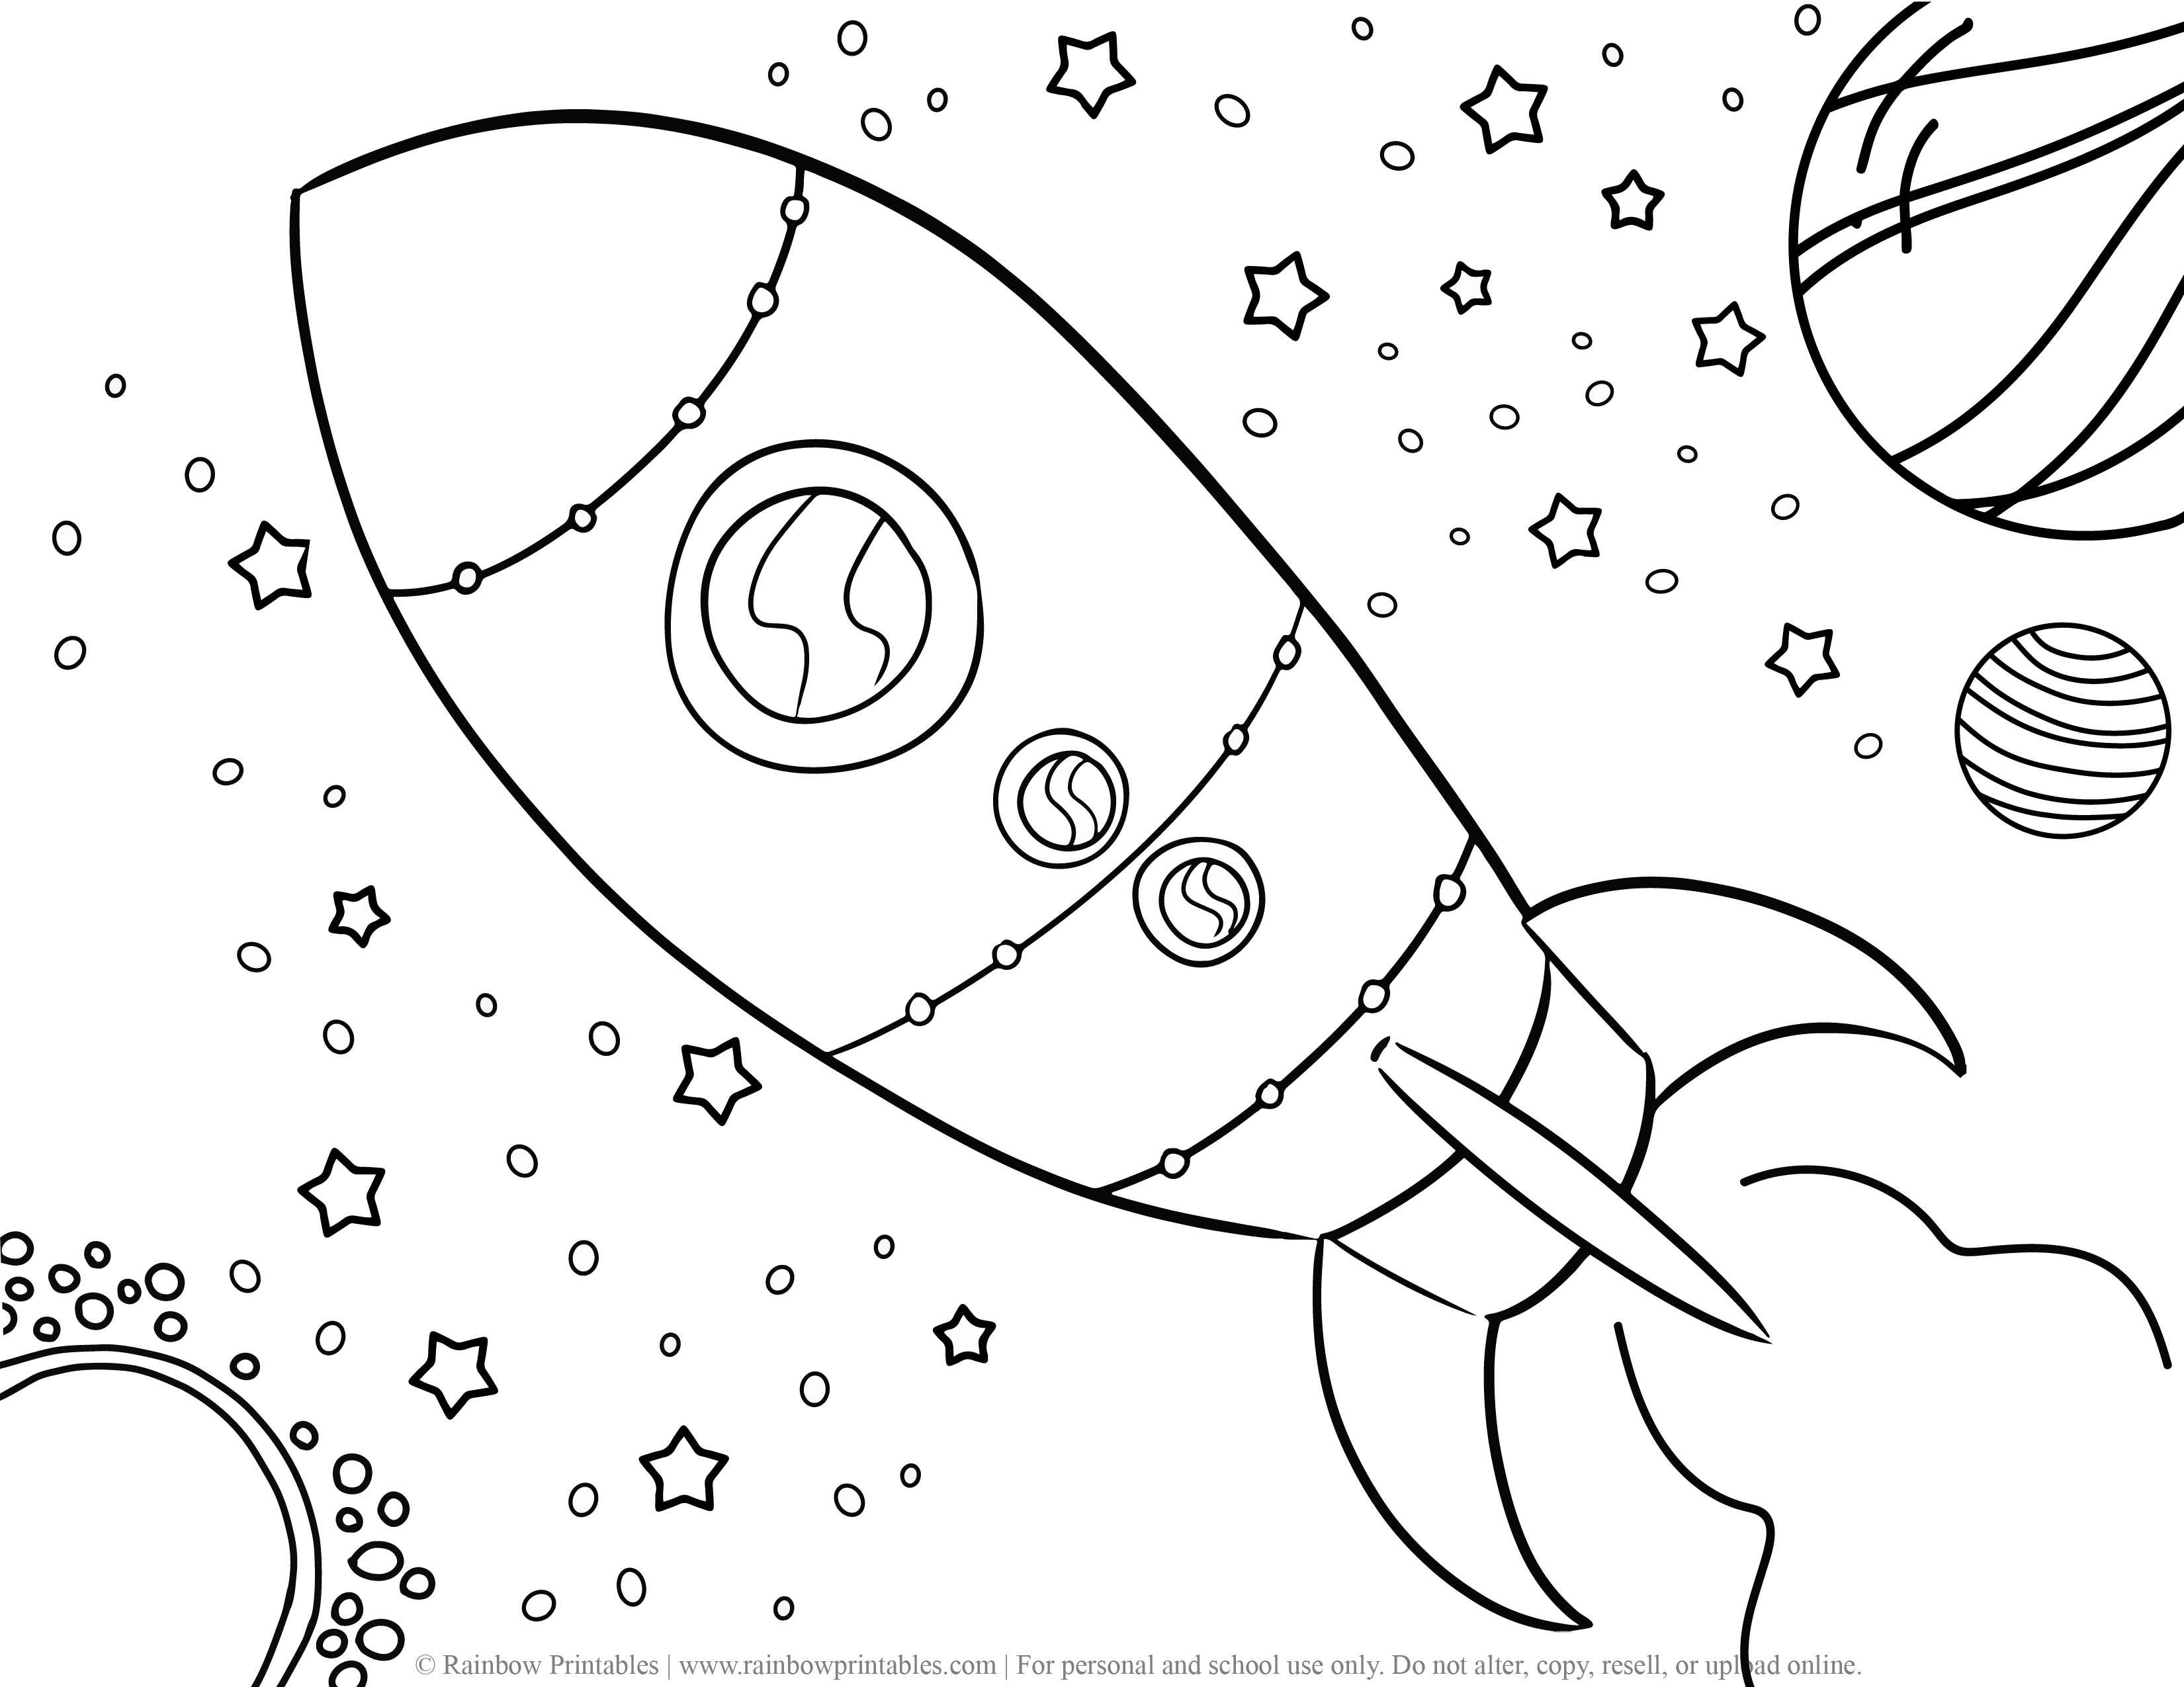 Rocket Ship Doodle Space Galaxy Planets Outerspace Coloring Page